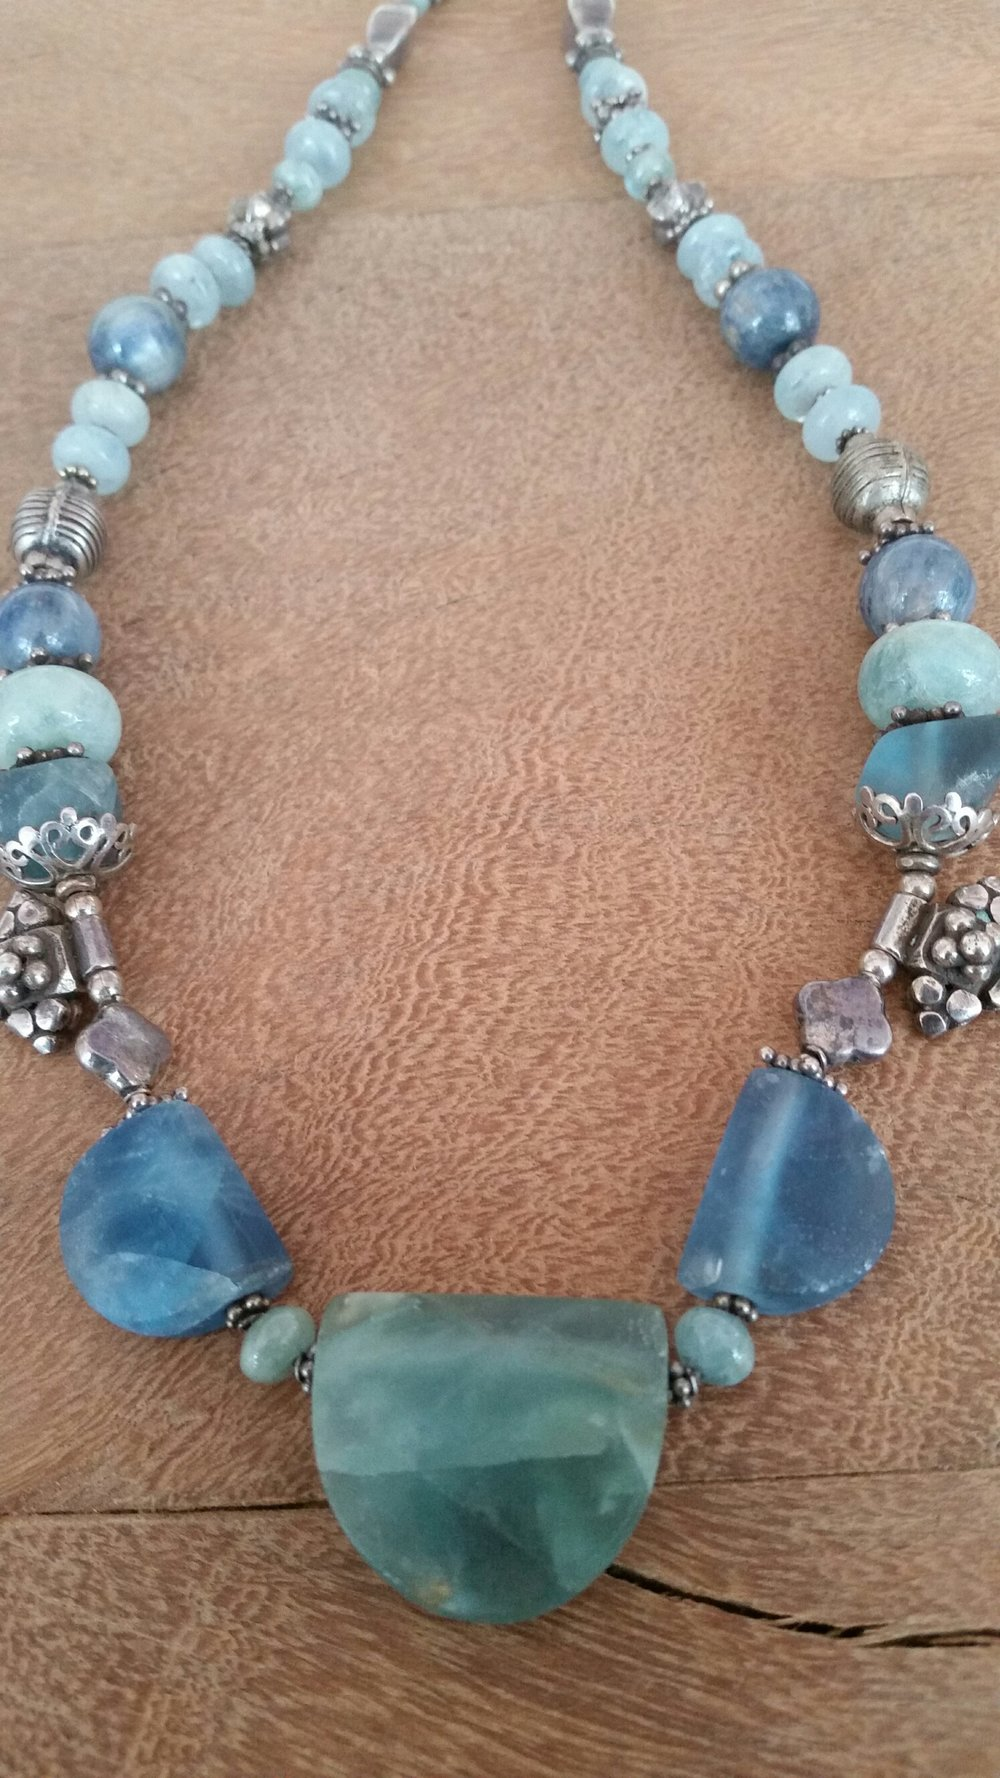 FLUORITE, AQUAMARINNE AND KYANITE NECKLACE #266